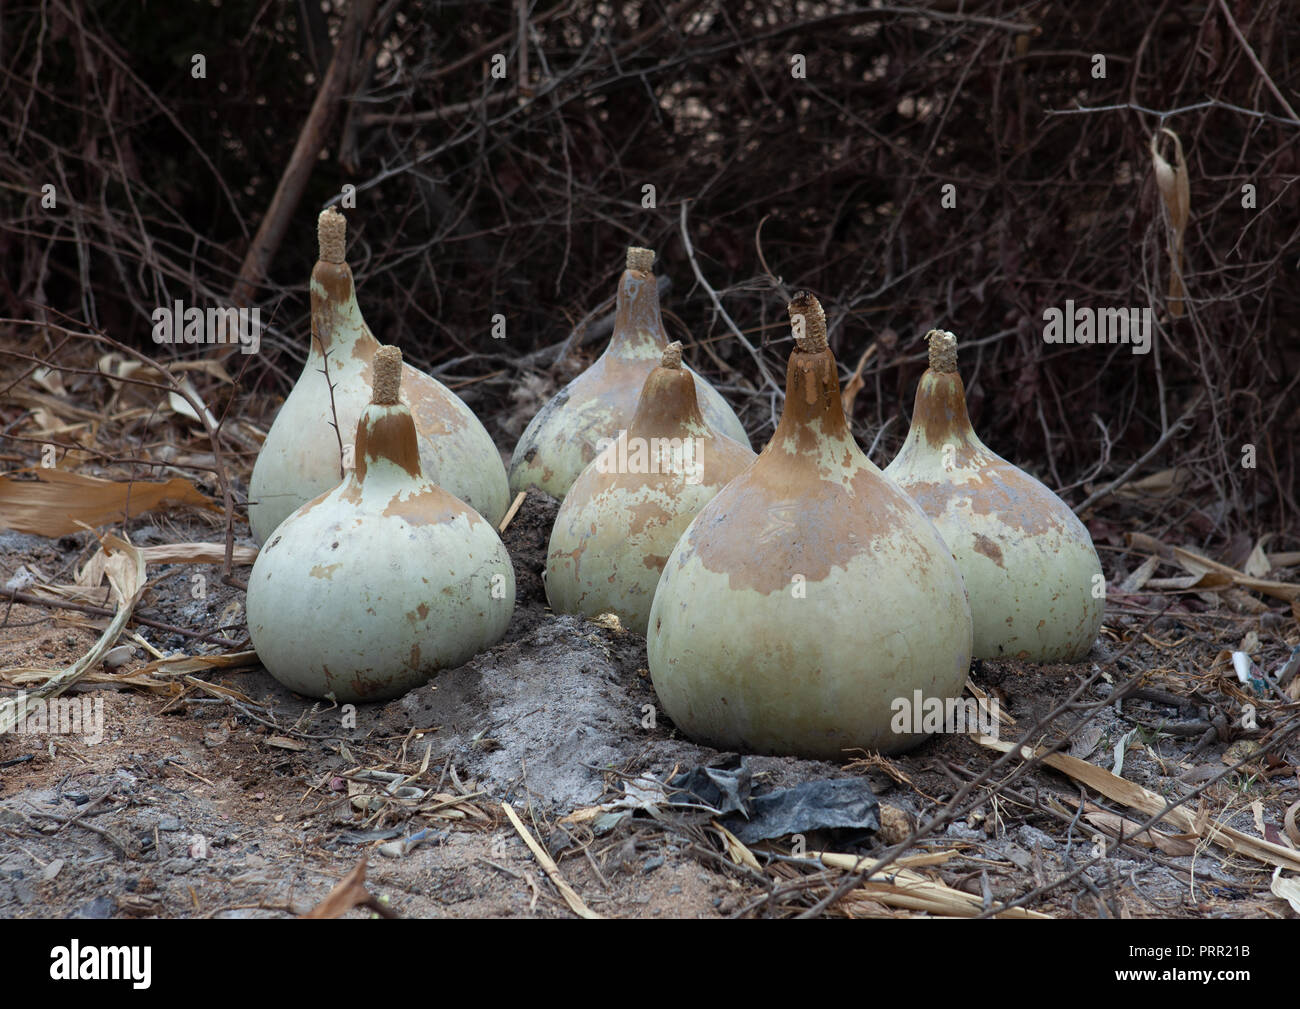 Calabashes used to cook food on fire, Namibe Province, Virei, Angola - Stock Image